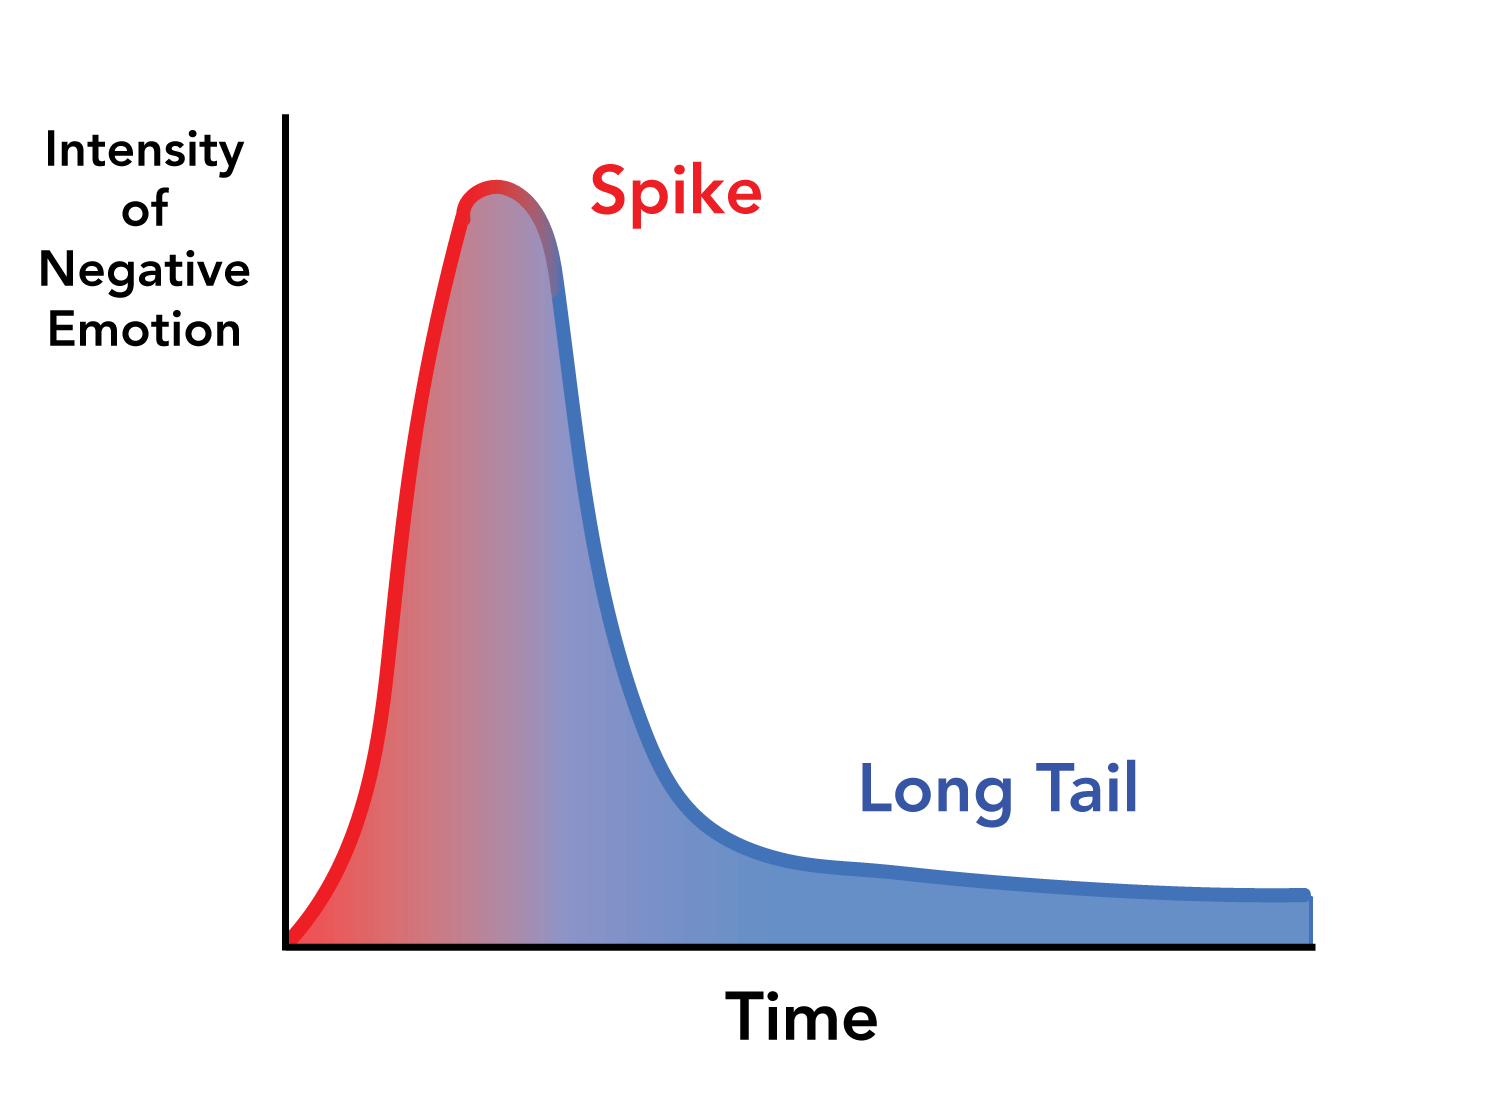 the long tail of negative emotions